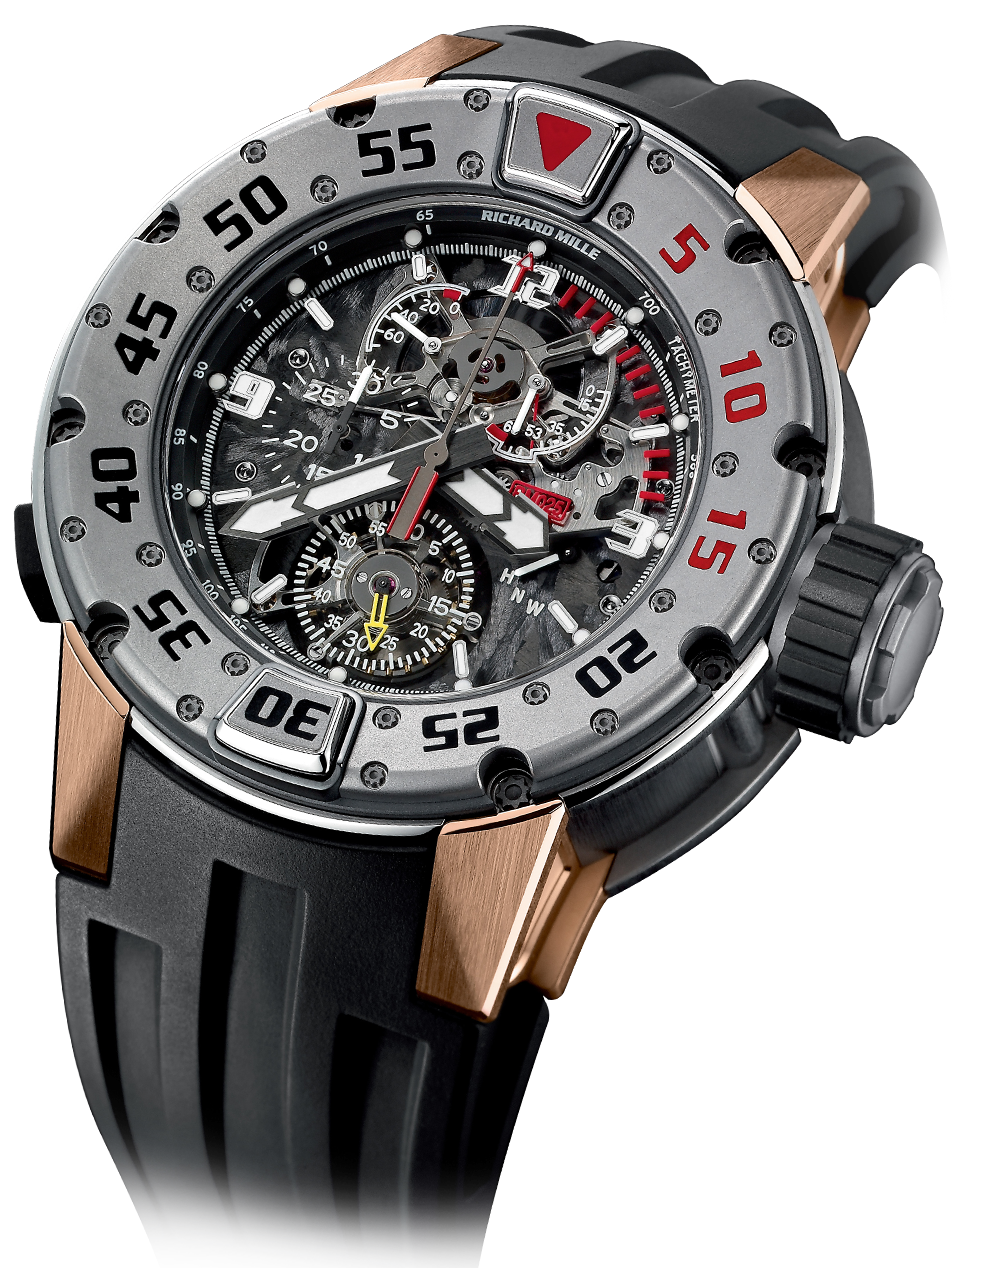 Rm 025-tourbillon chronograph diver's watch